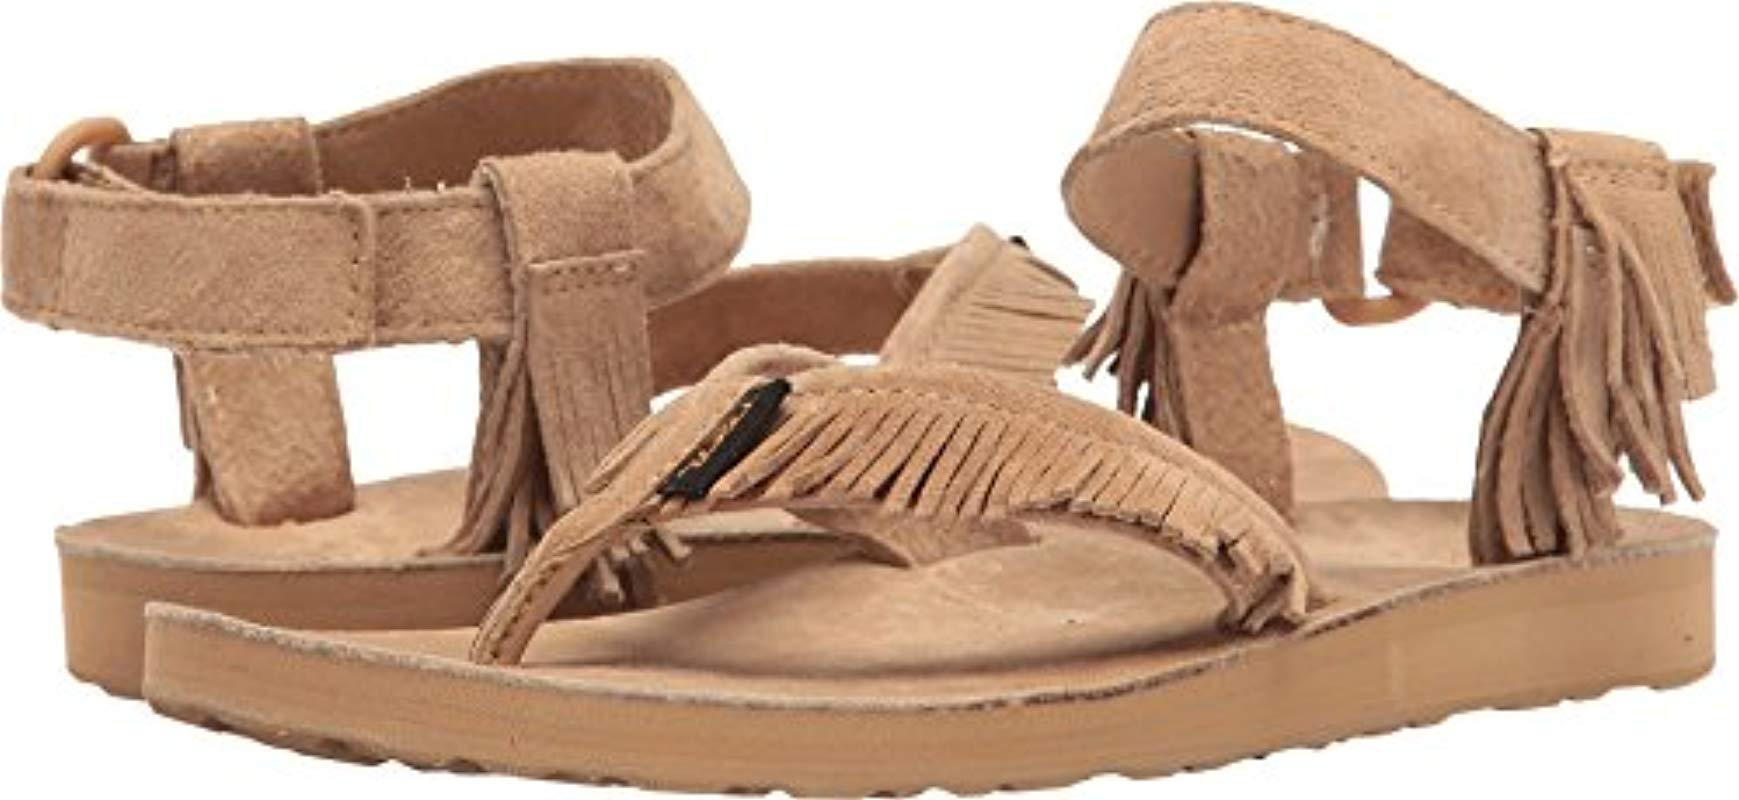 37a25441bc71 Lyst - Teva W Original Leather Fringe Sandal in Brown - Save 32%